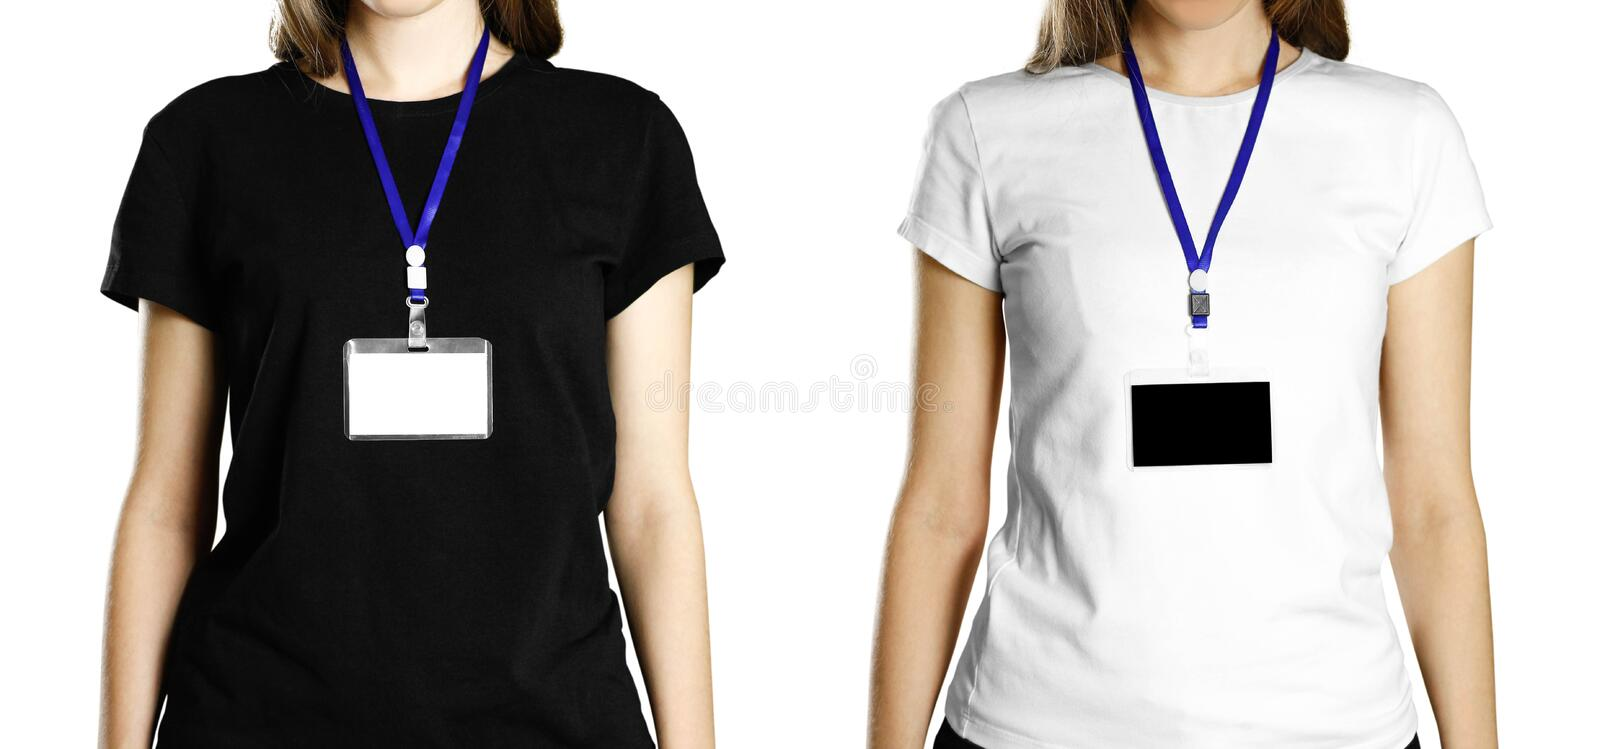 Girl with a badge on her chest. Close up. Isolated background stock images